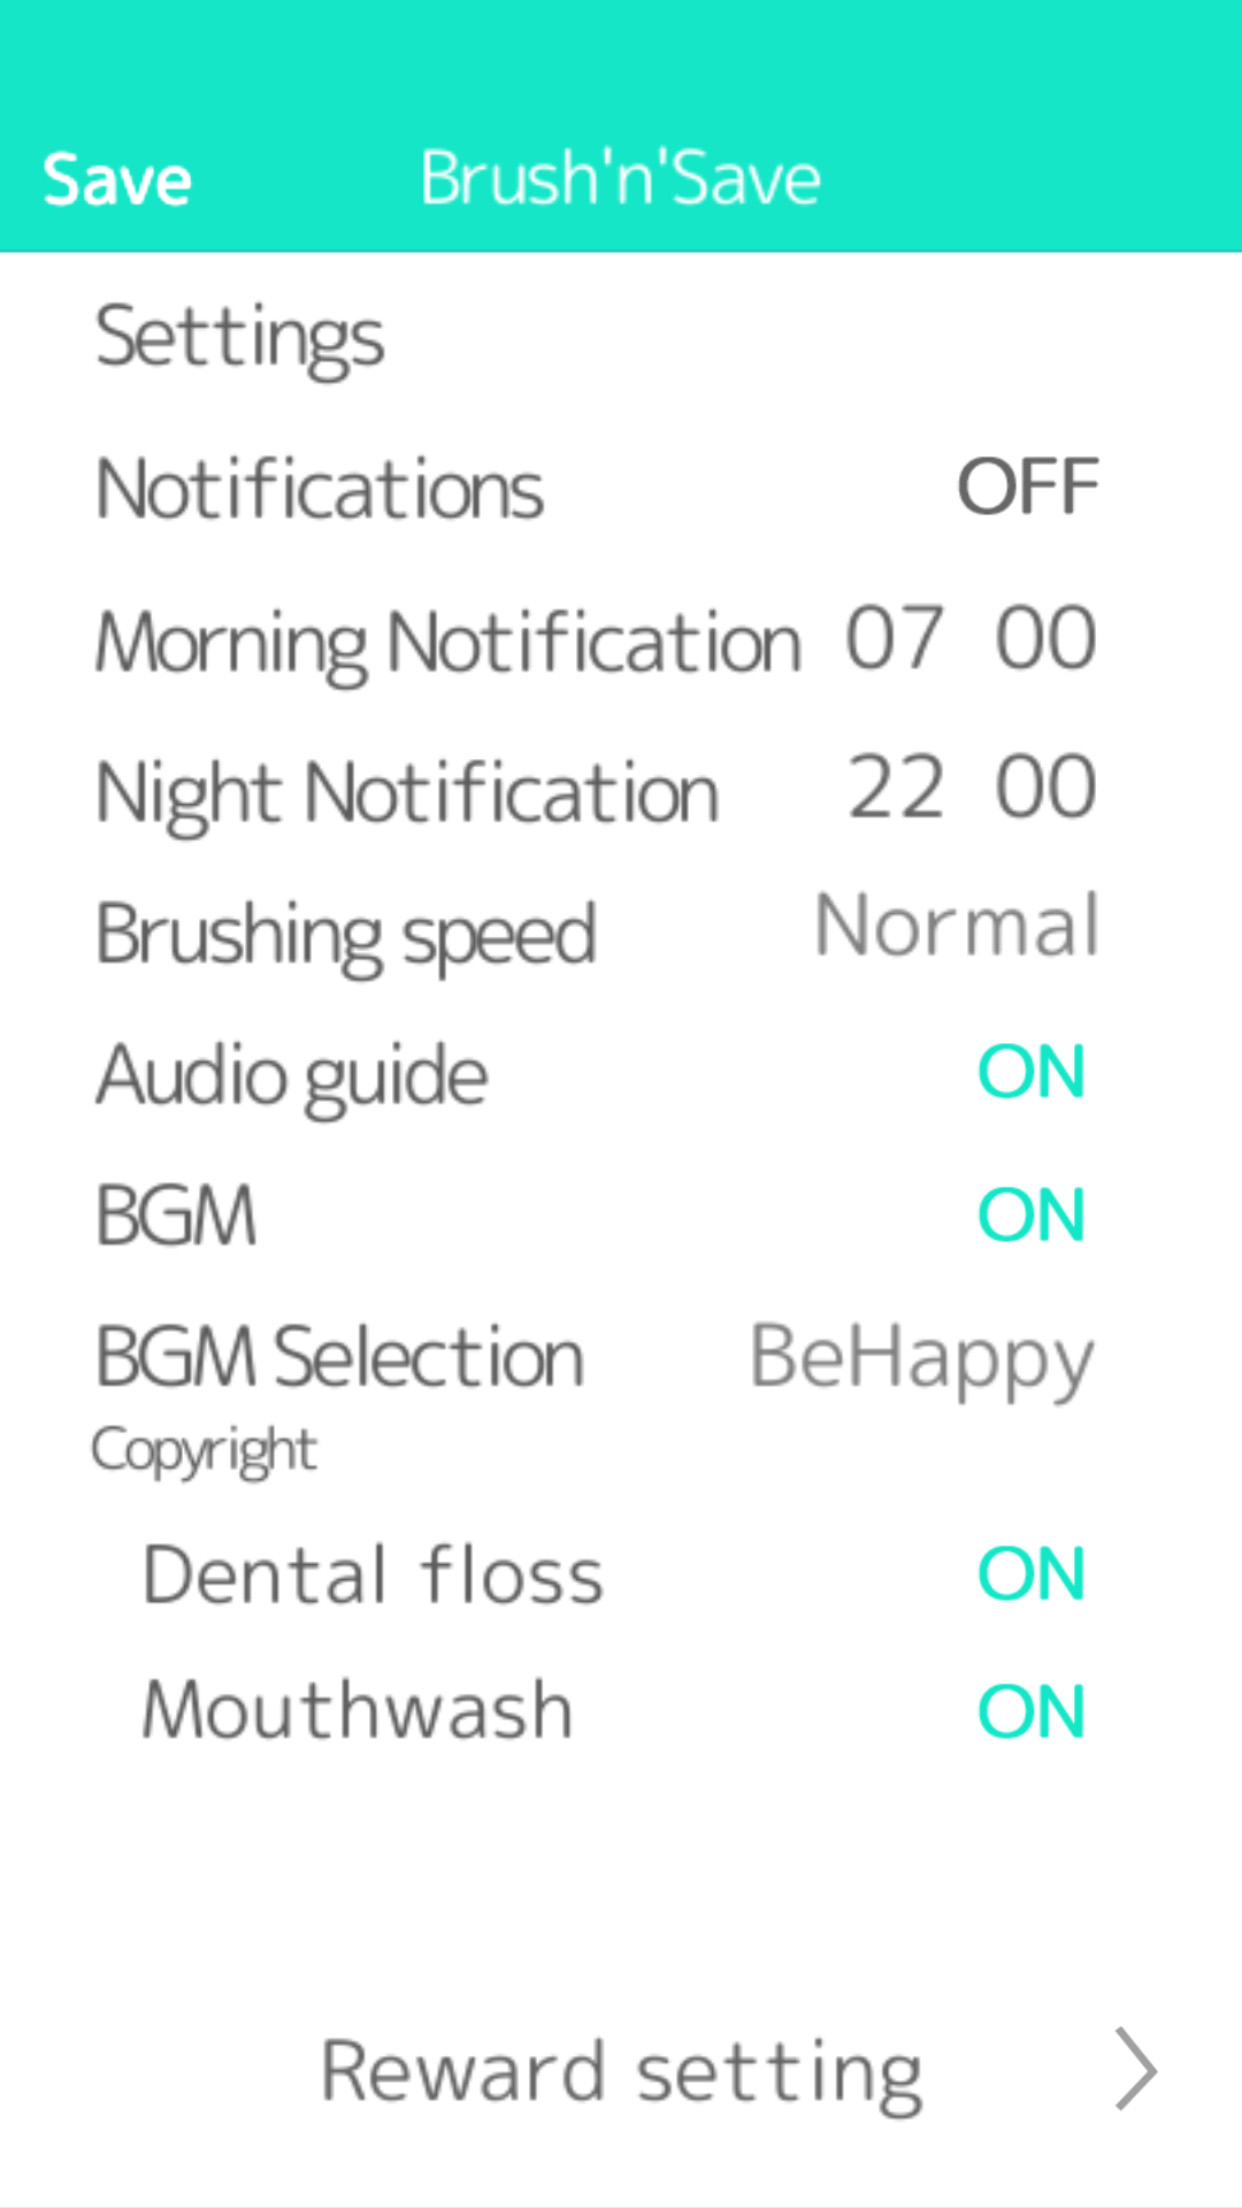 Brush'n'Save Usage/Other Settings